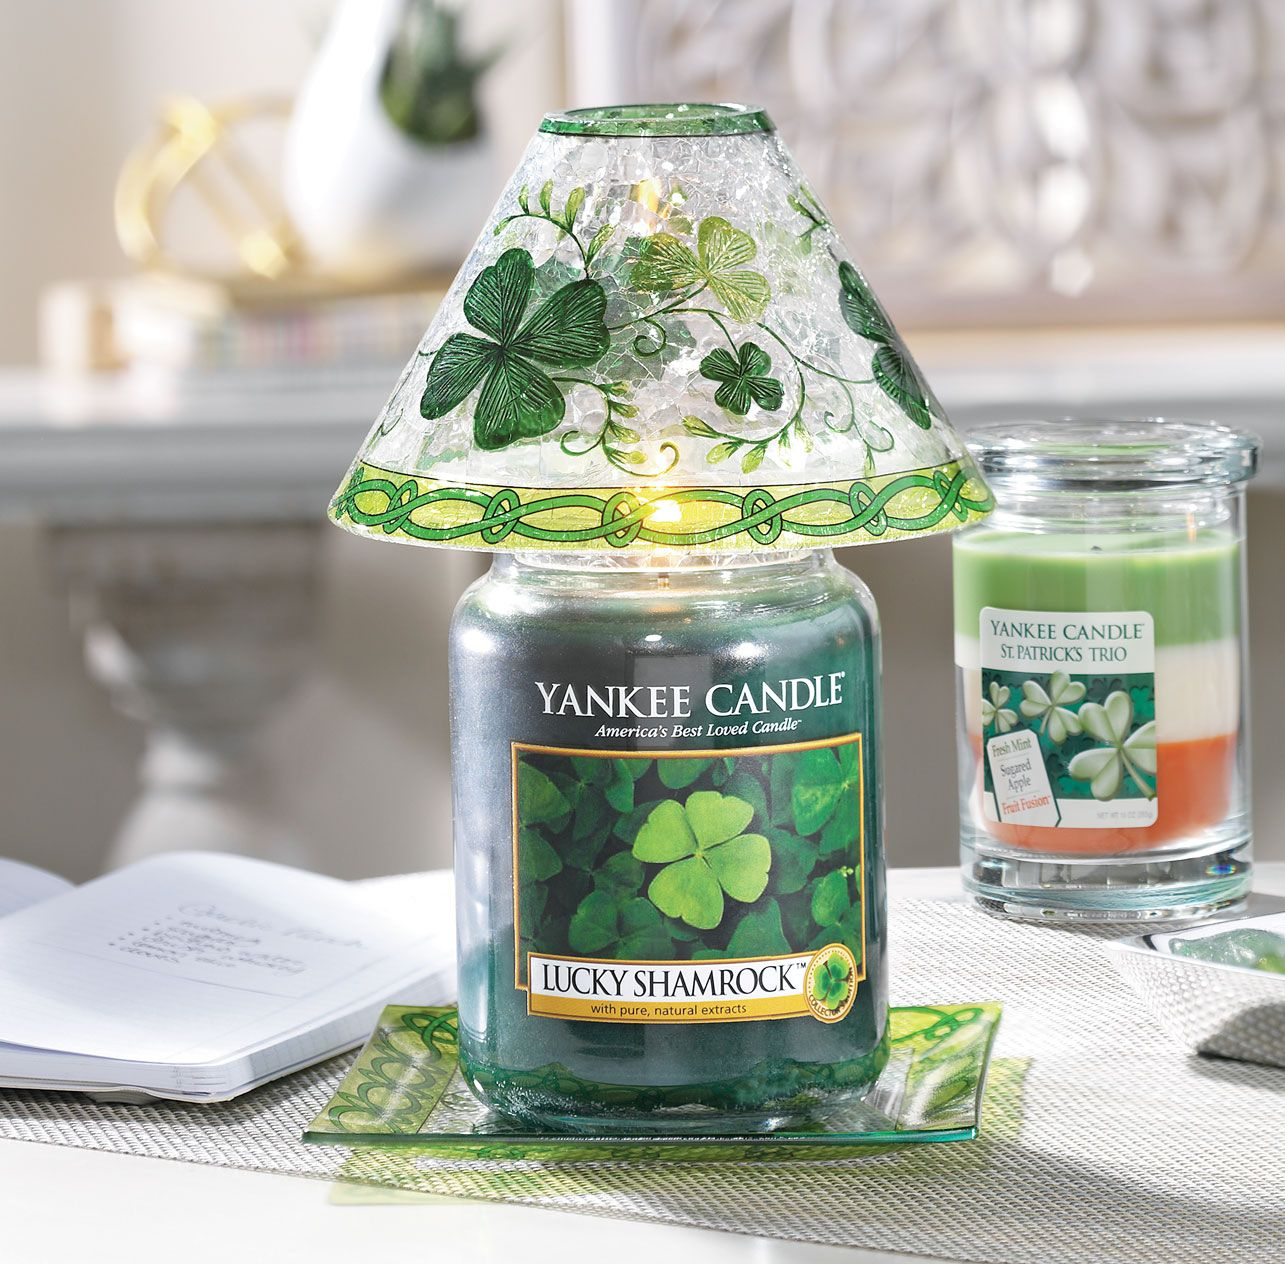 Yankee Candle Country Kitchen The Complete Range Of Yankee Candles Can Be Found At The Best